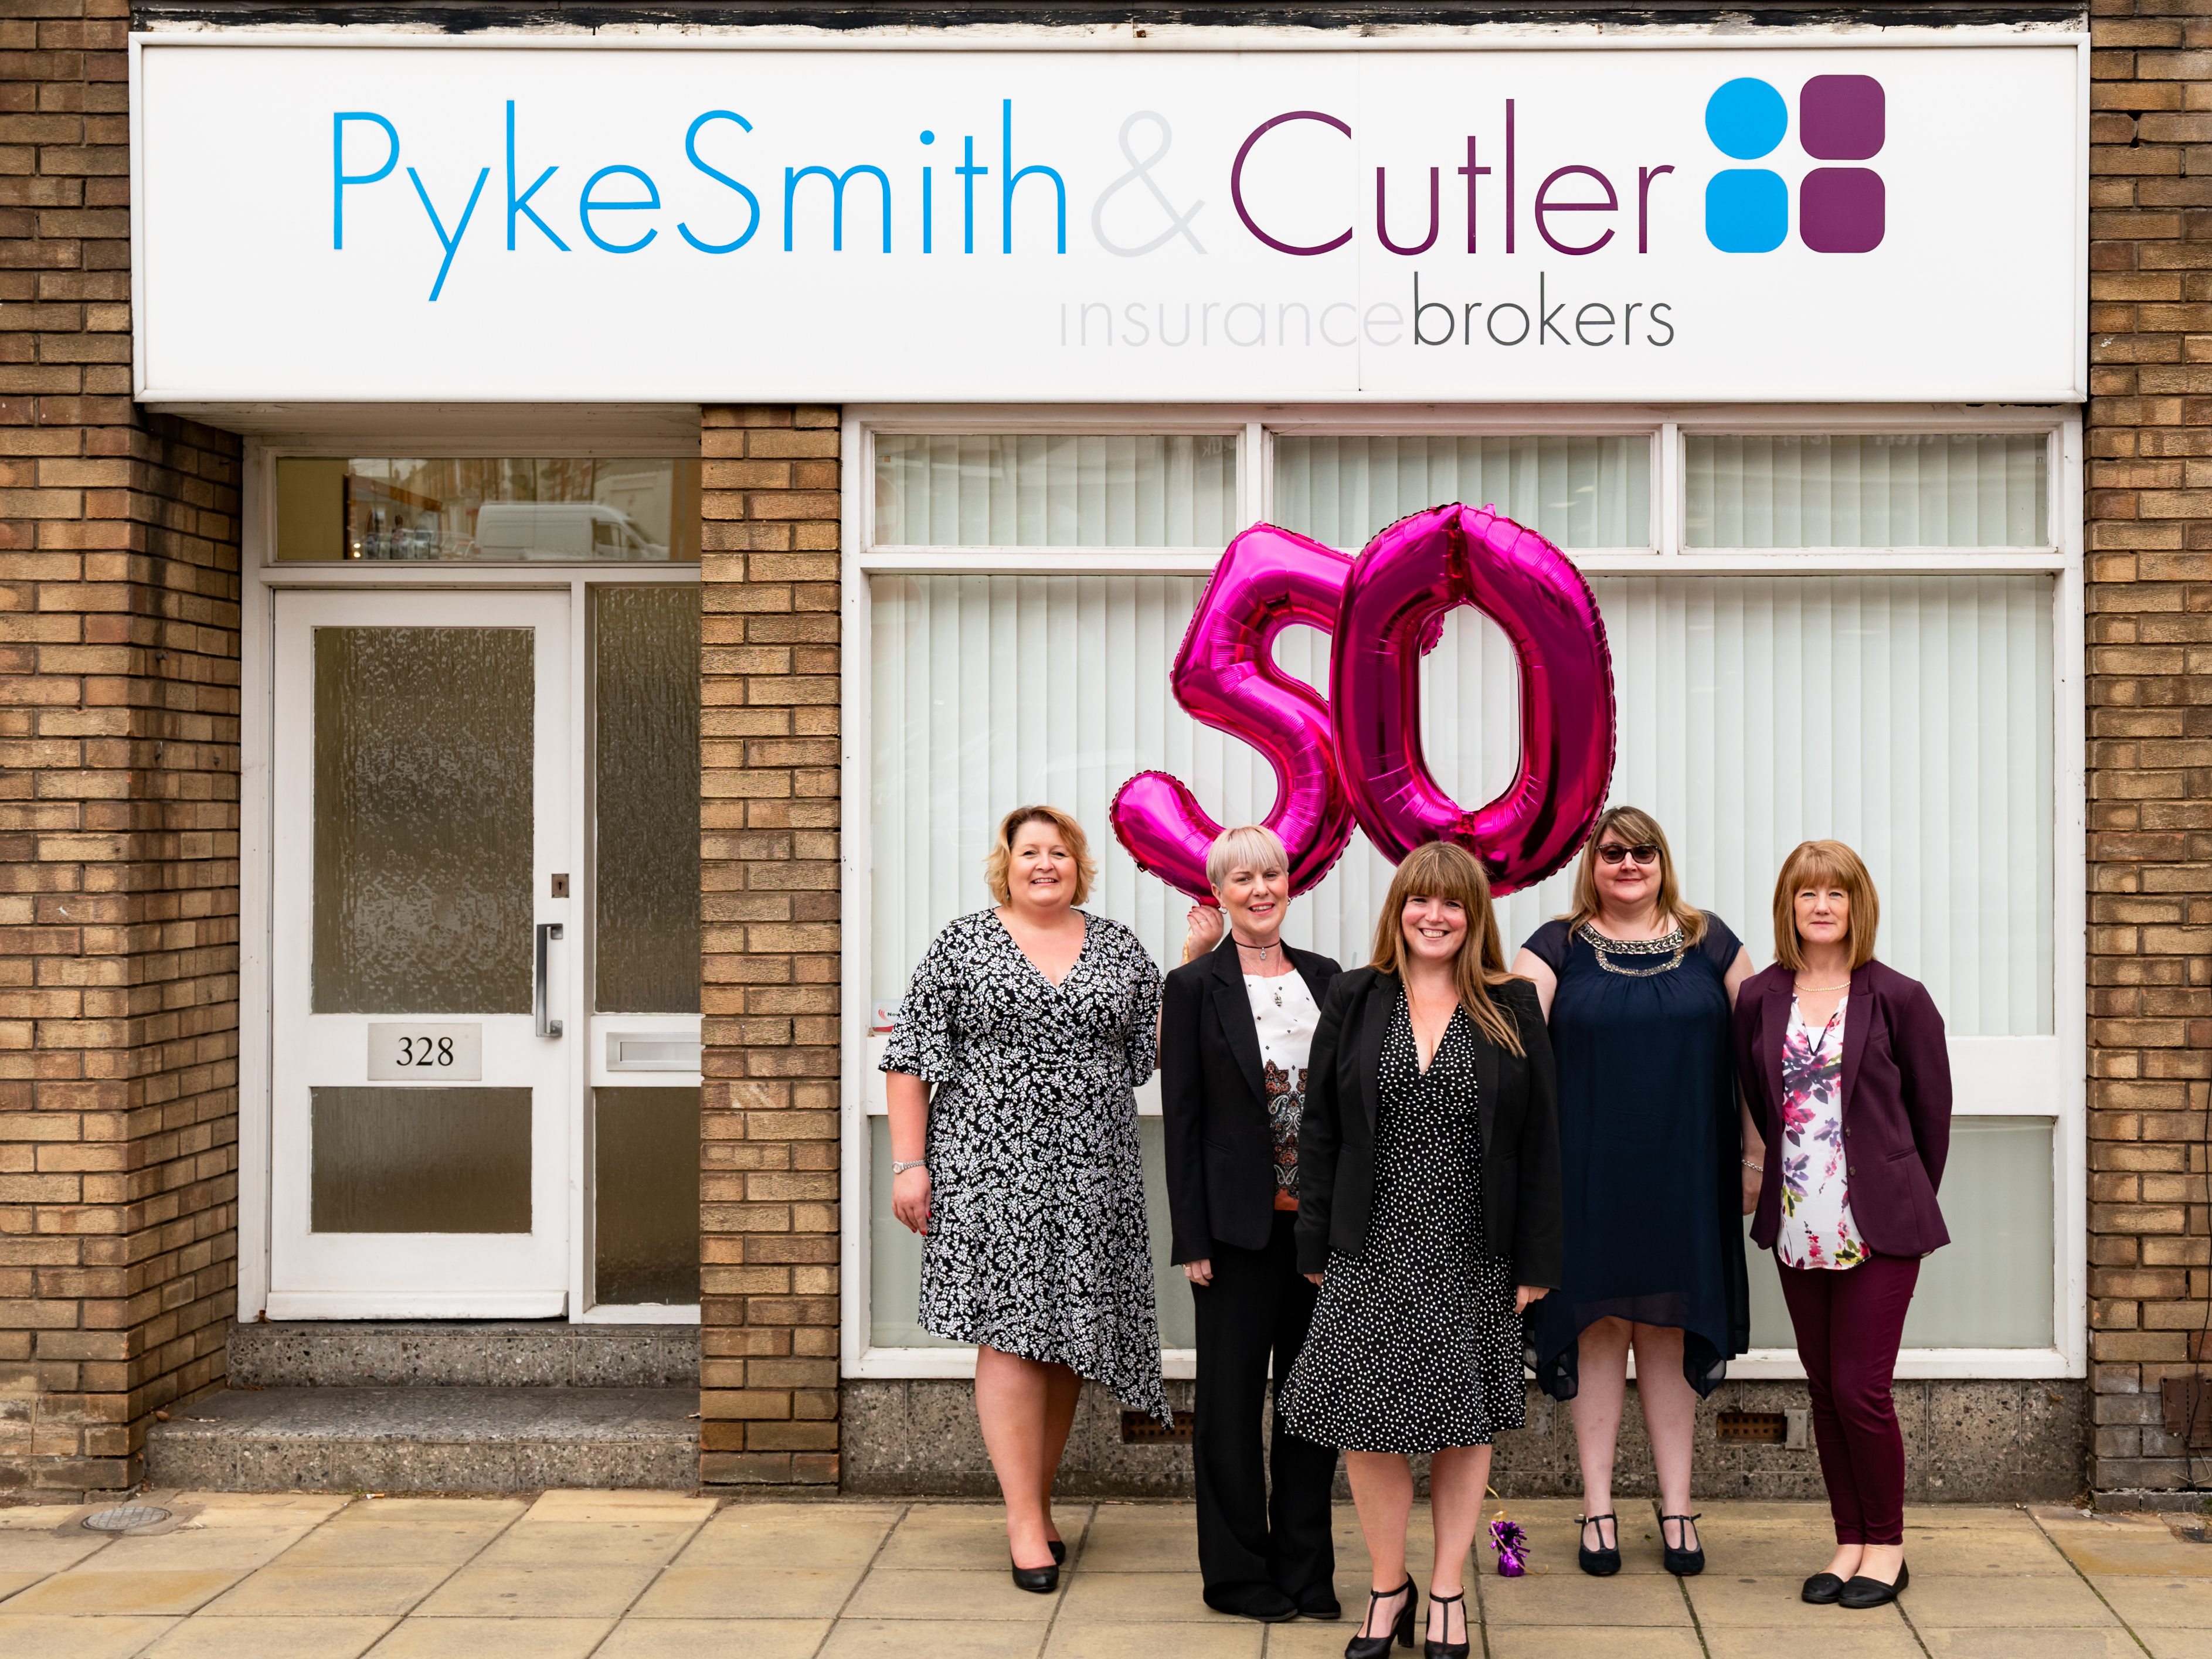 Independent insurance brokers celebrate 50 years in business